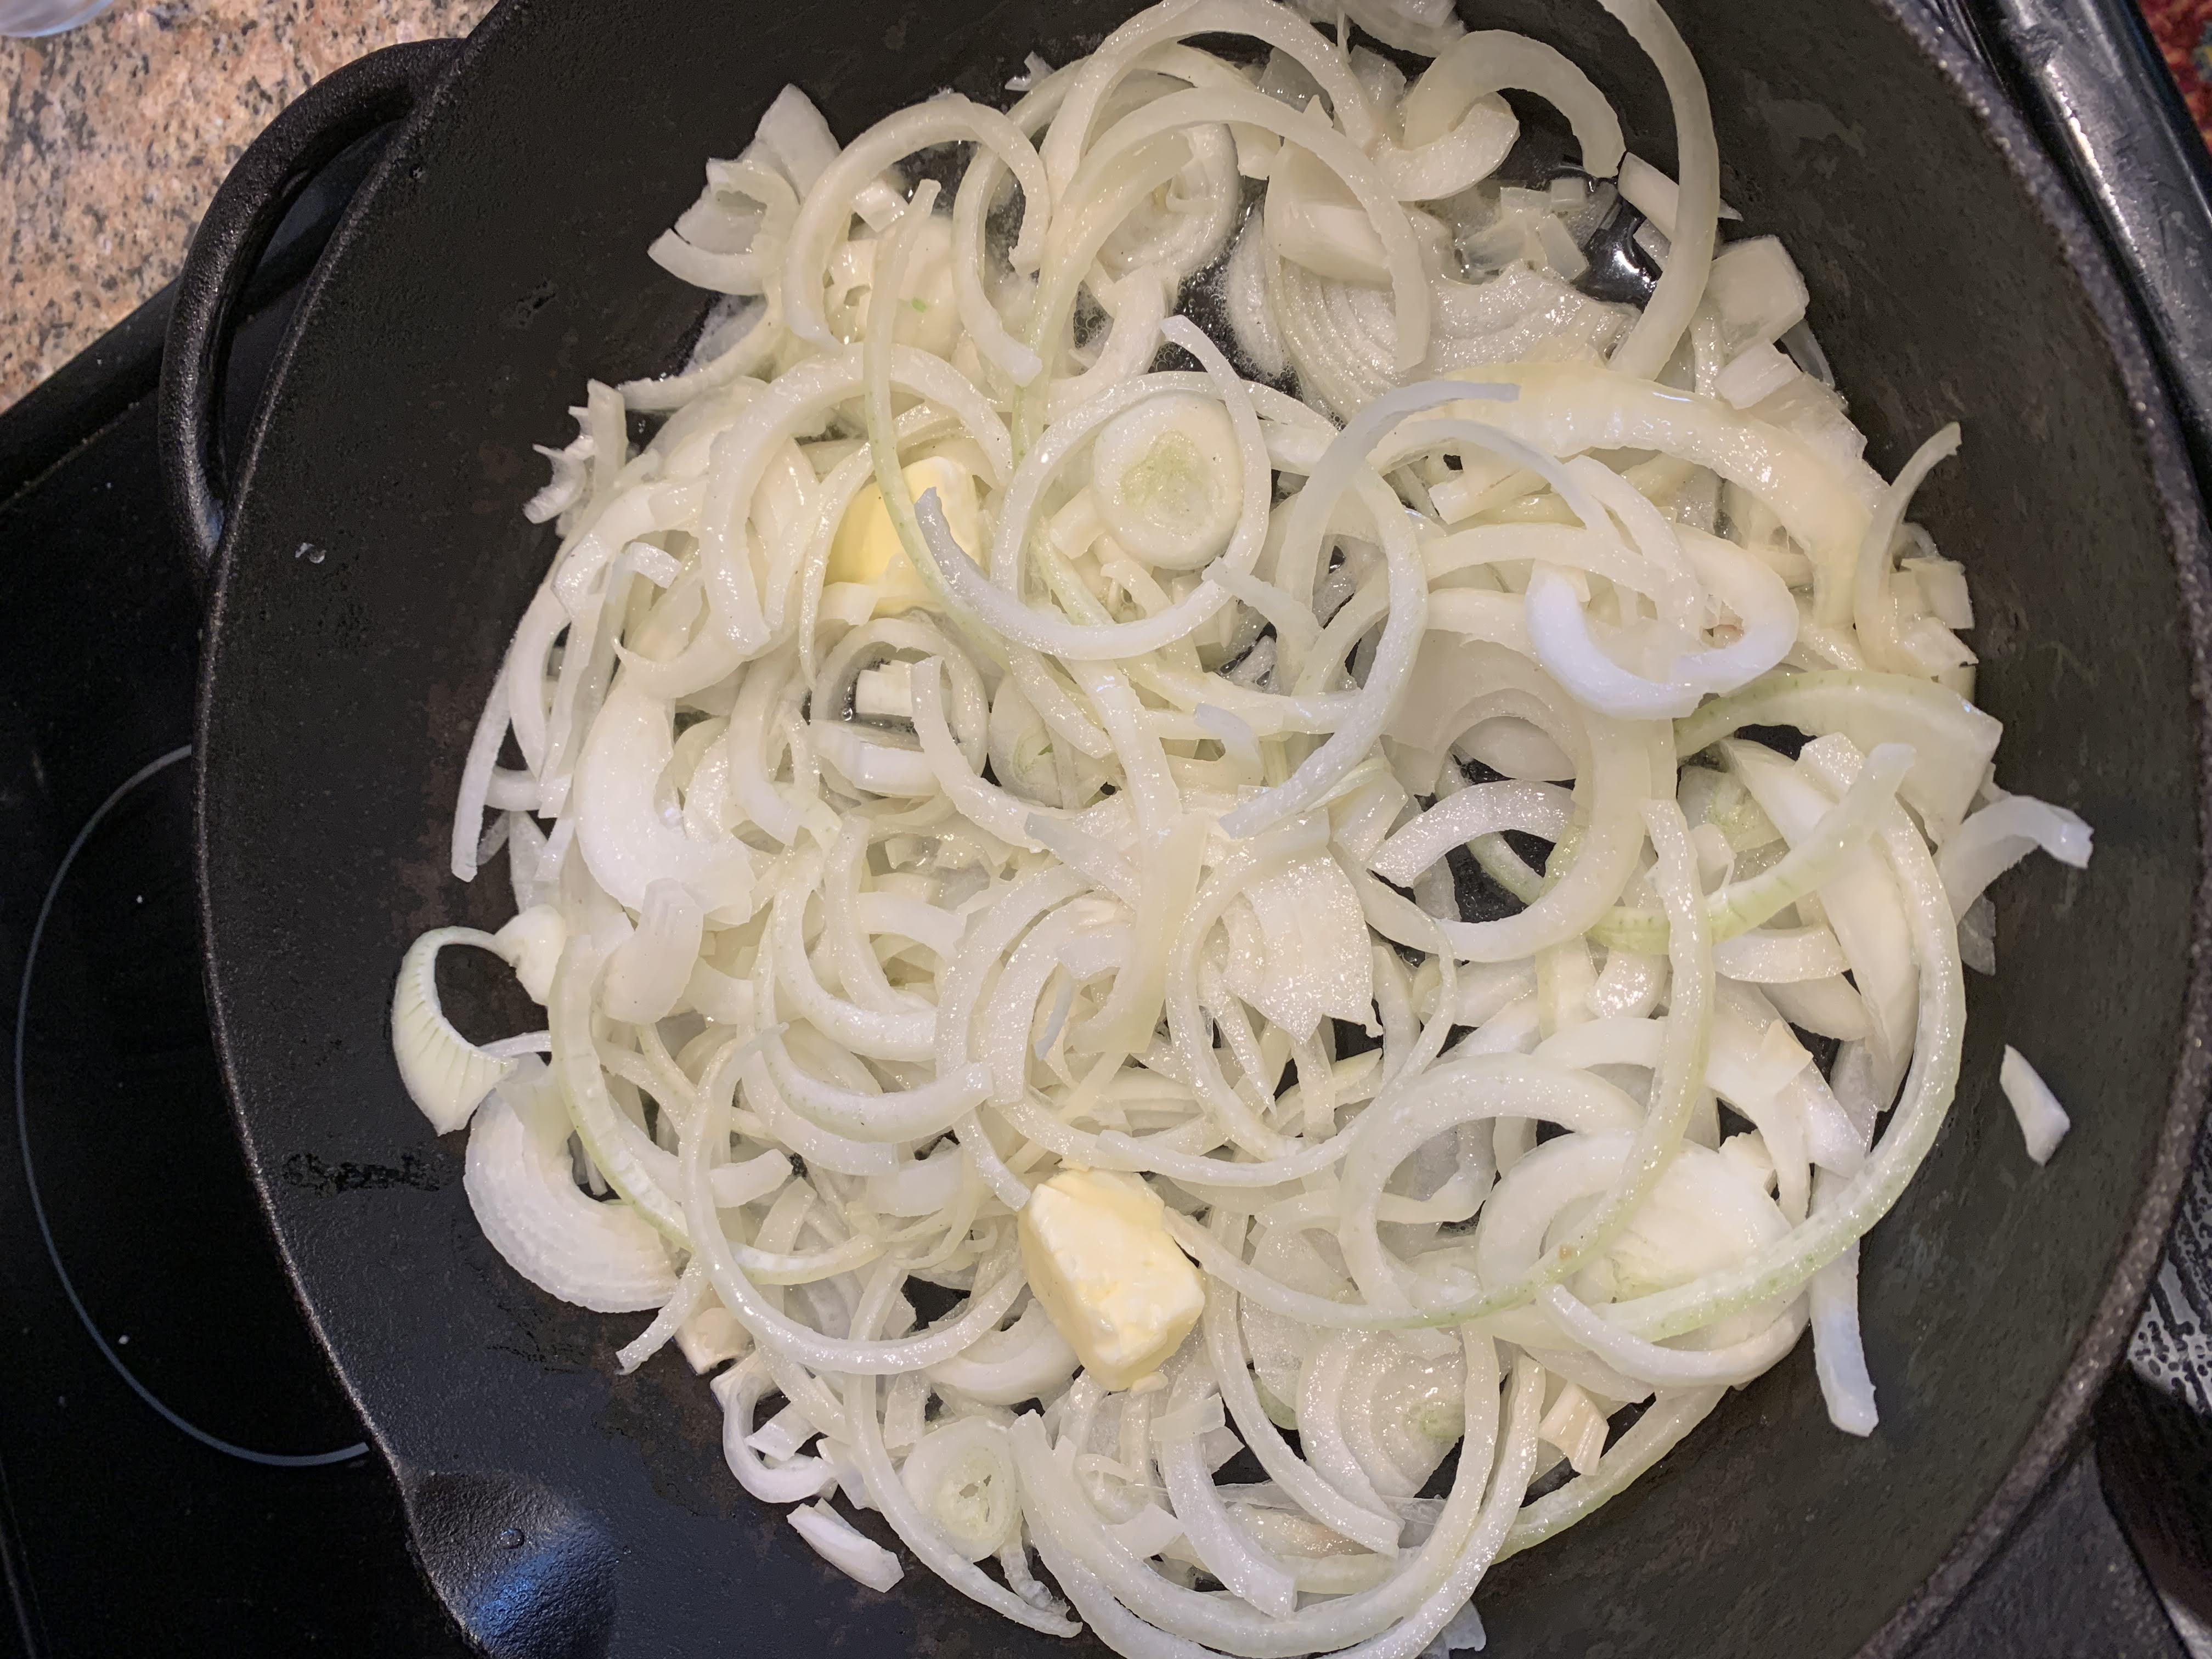 cast iron skillet with sliced onions and pats of butter